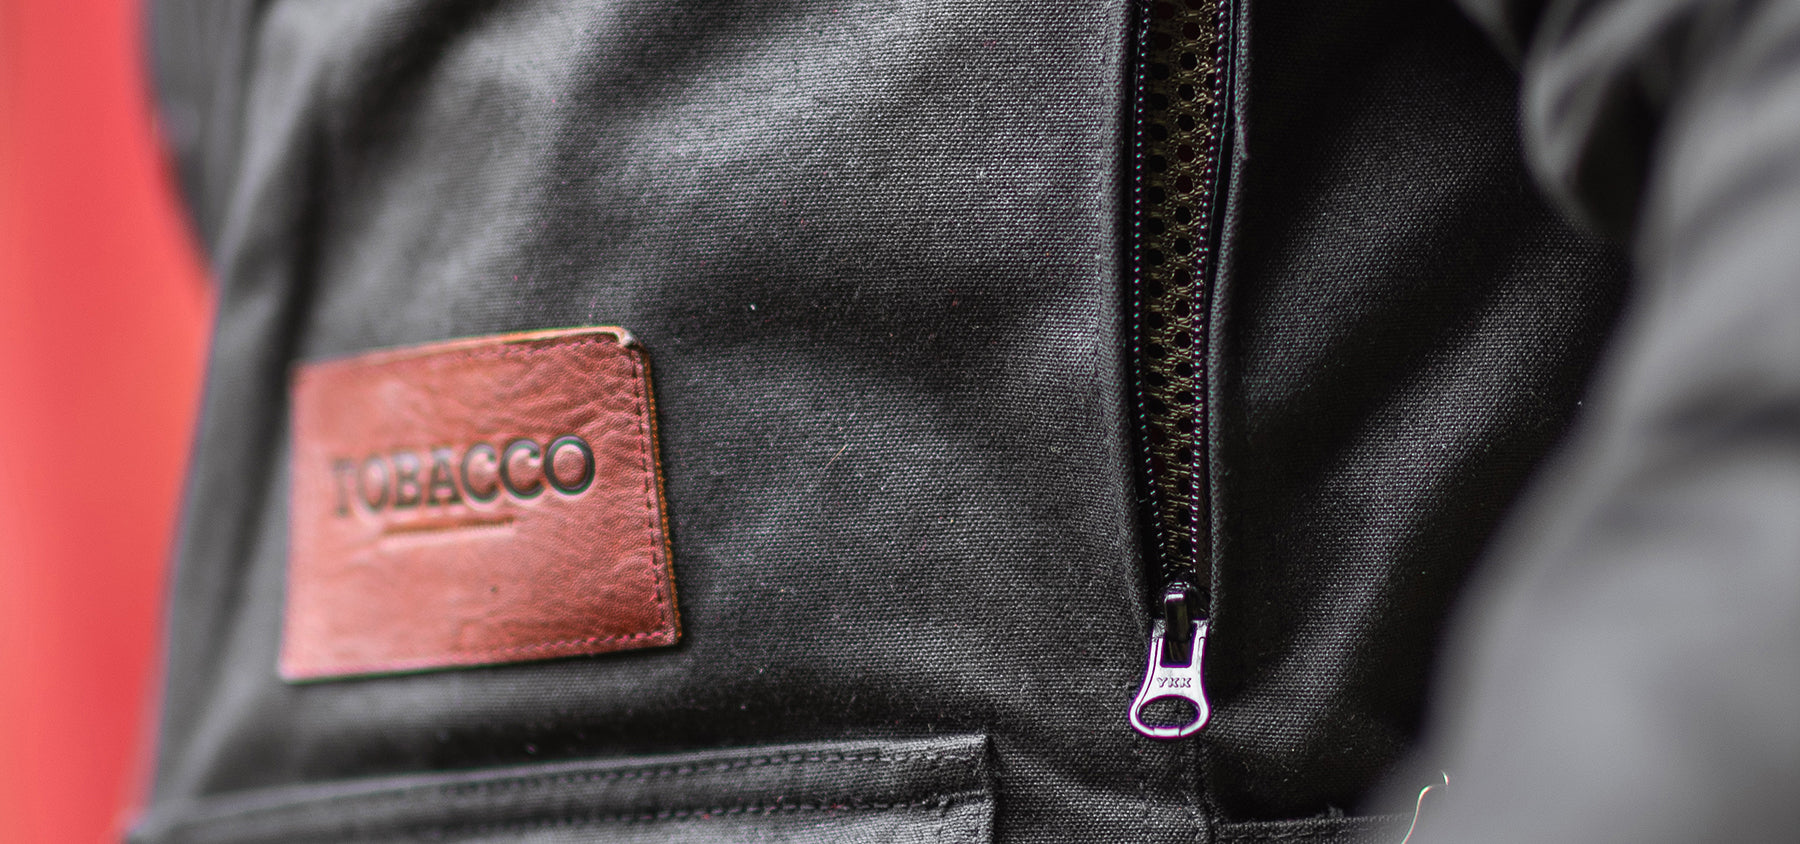 The Mccoy Jacket Details